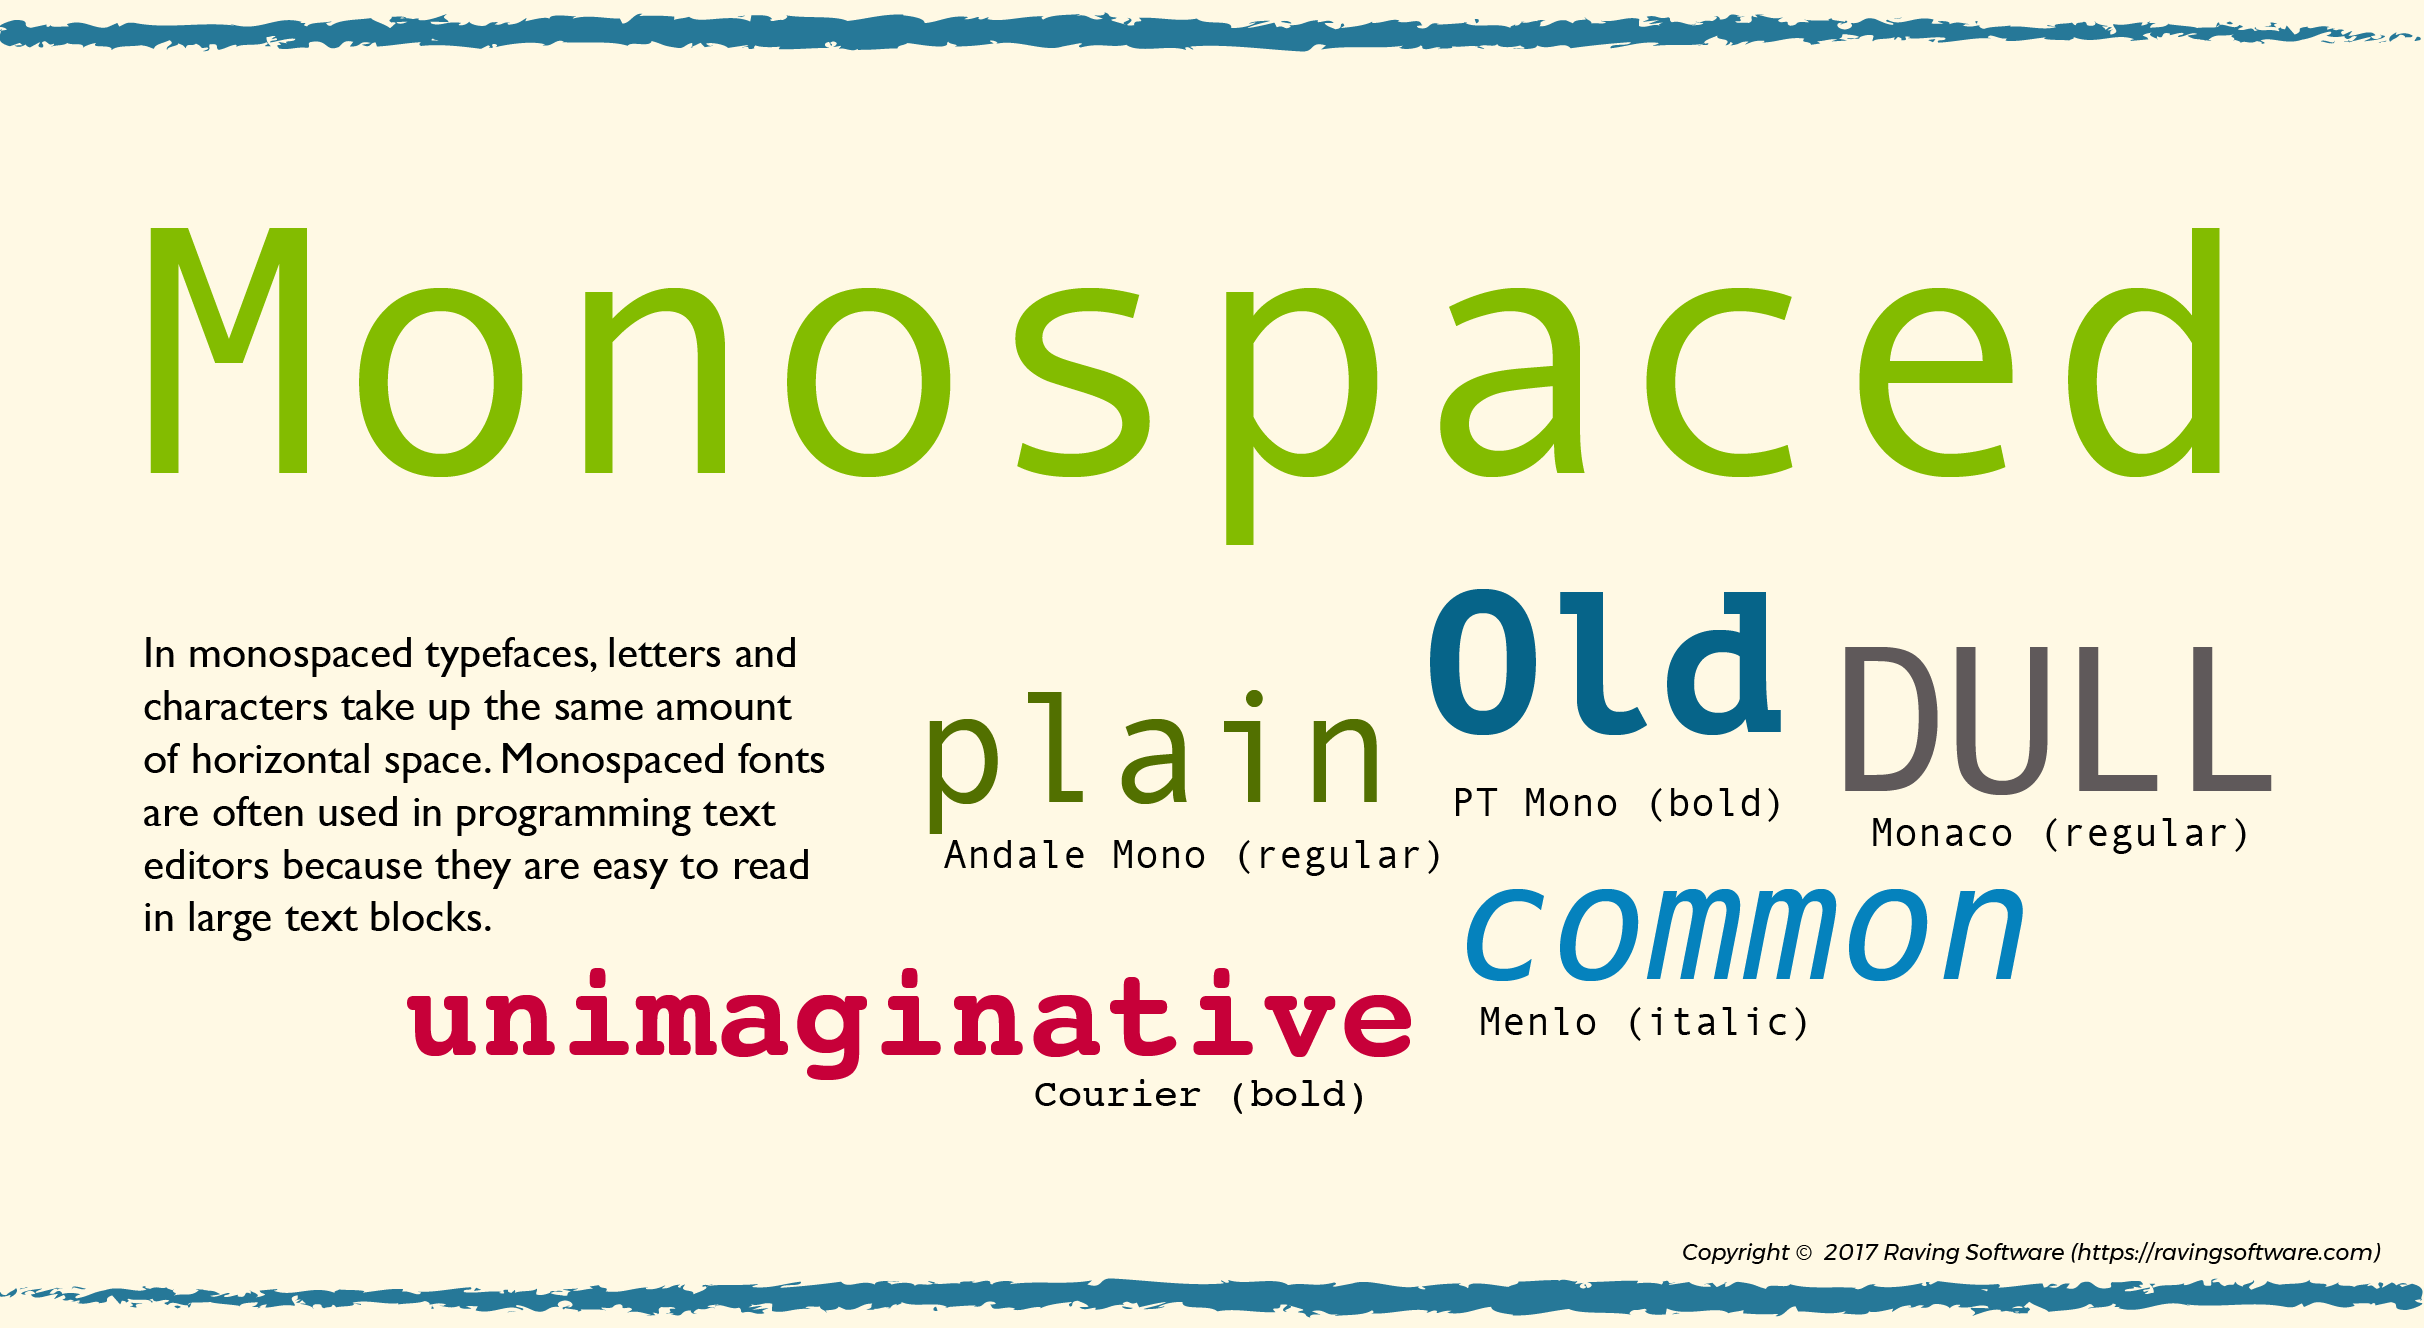 xamples of monospaced typefaces and connotations